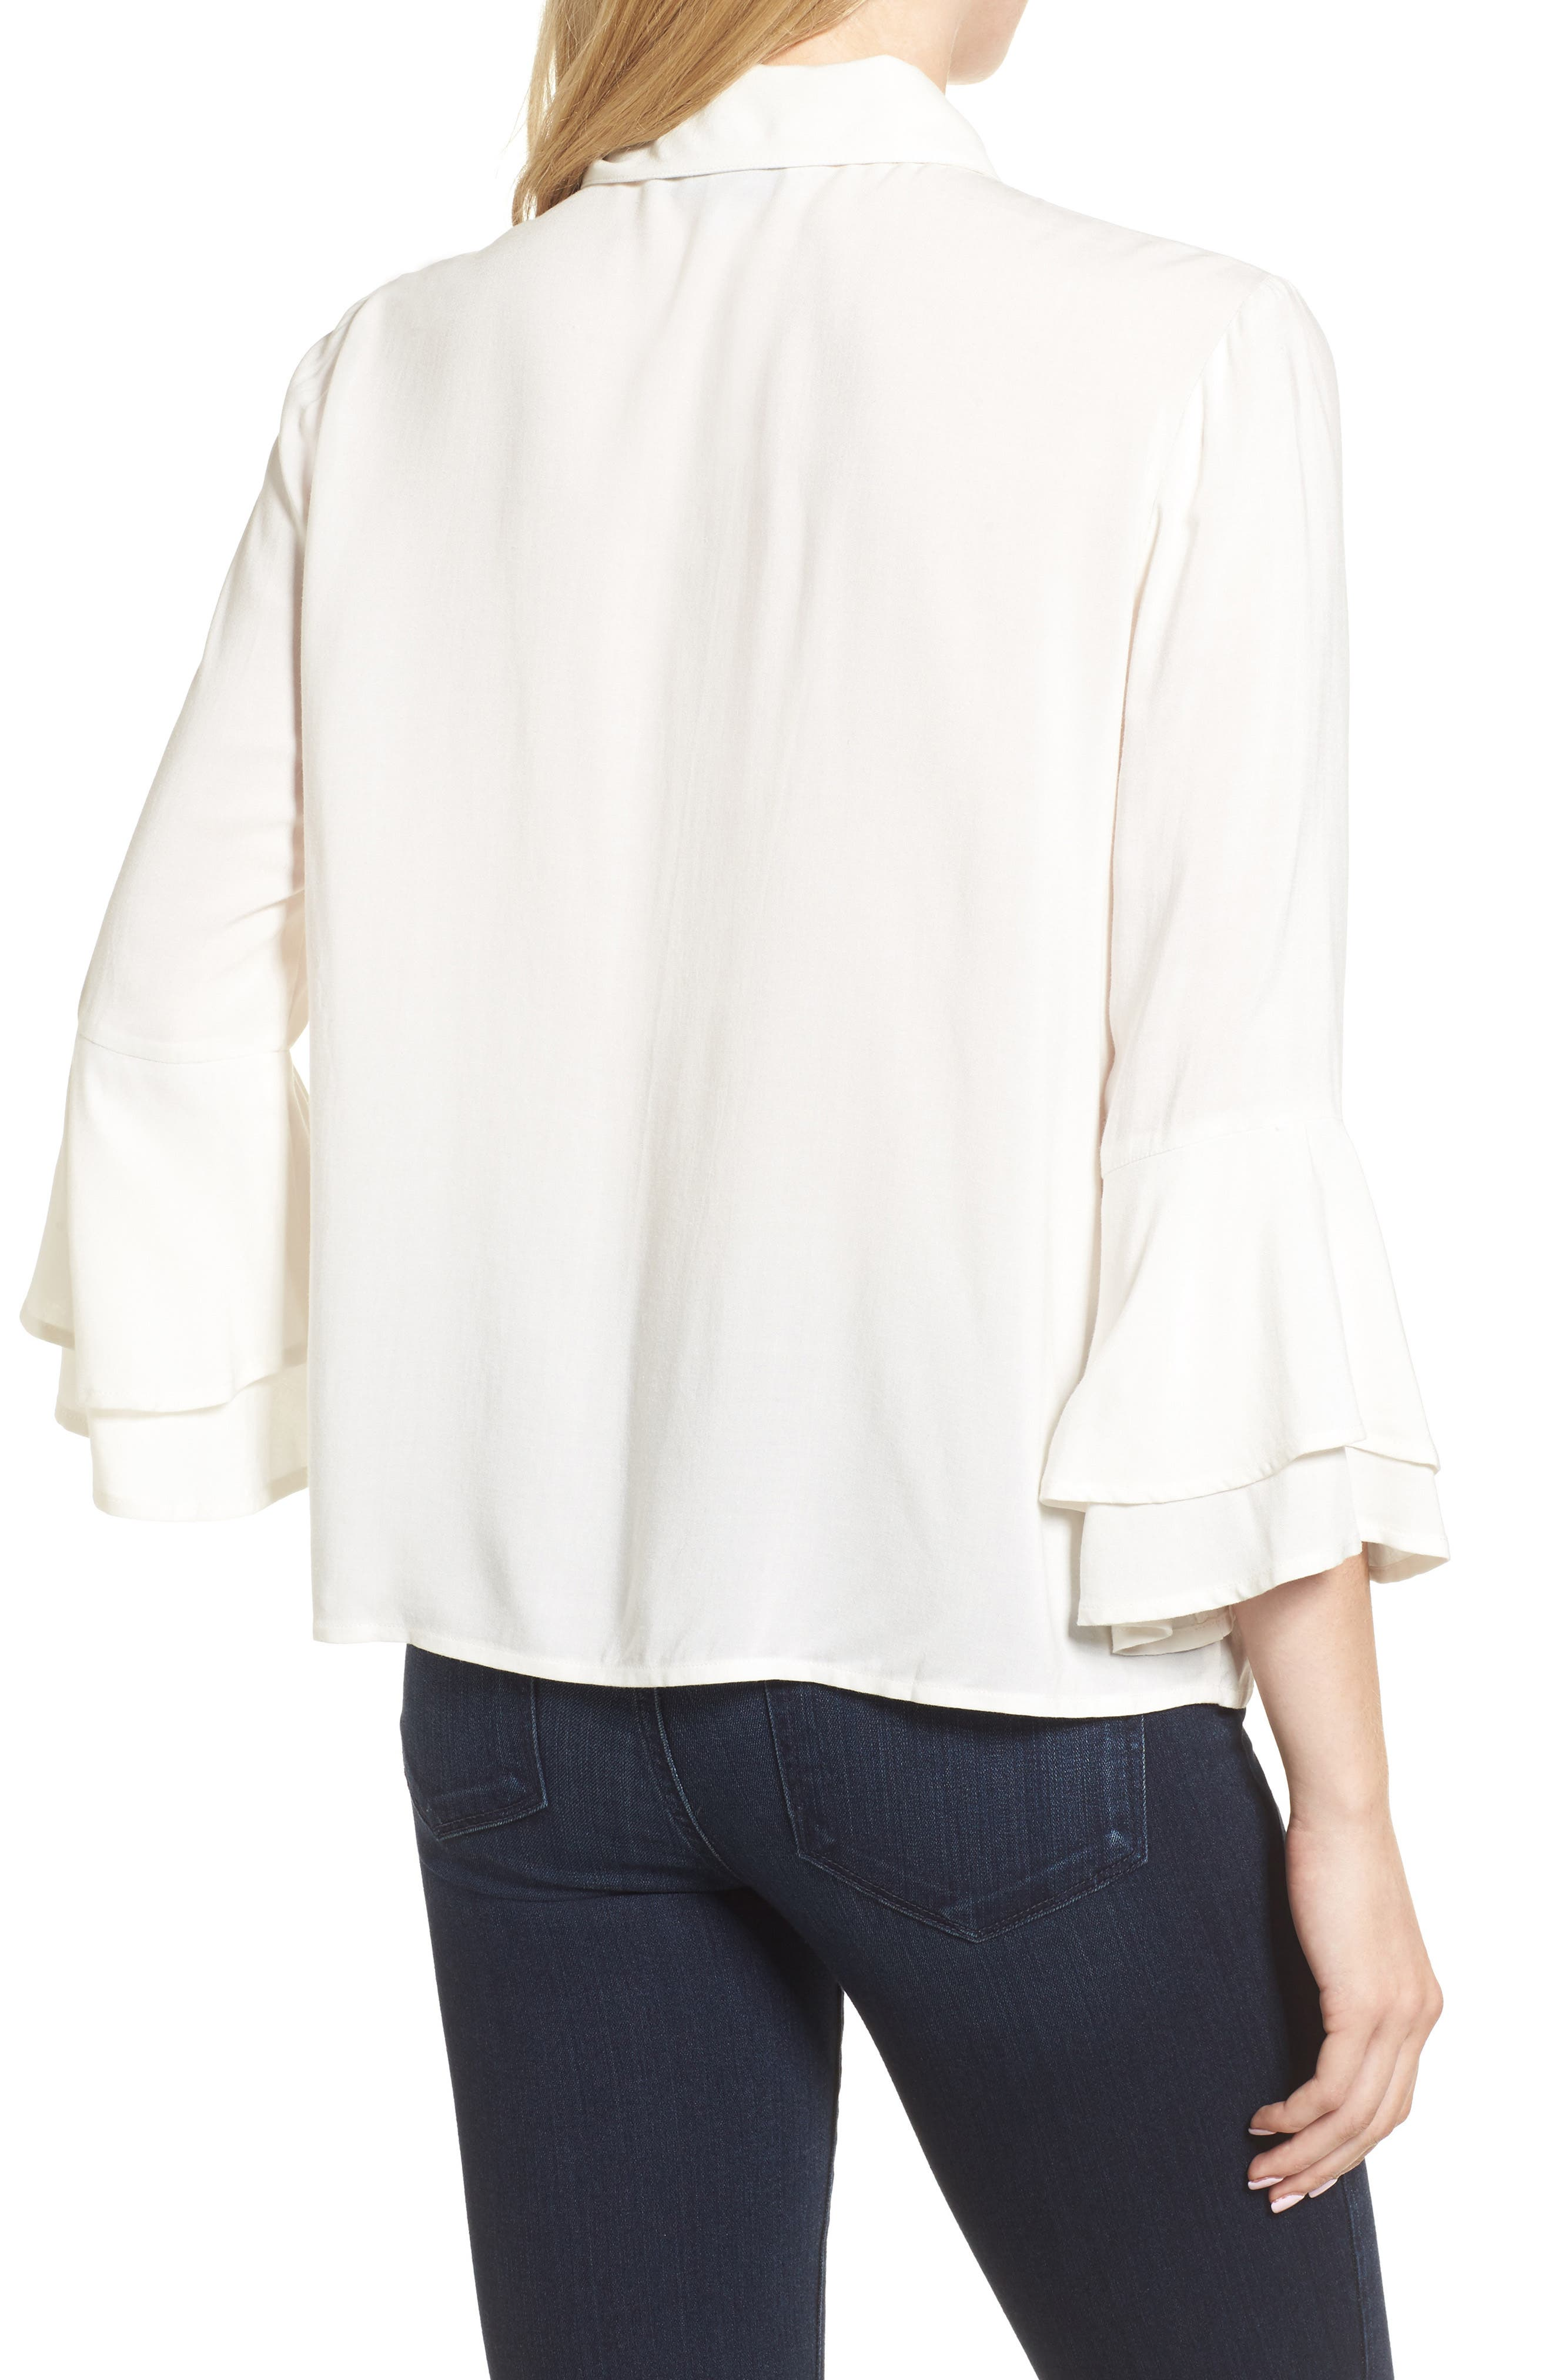 Kymberly Embroidered Blouse,                             Alternate thumbnail 2, color,                             Ivory